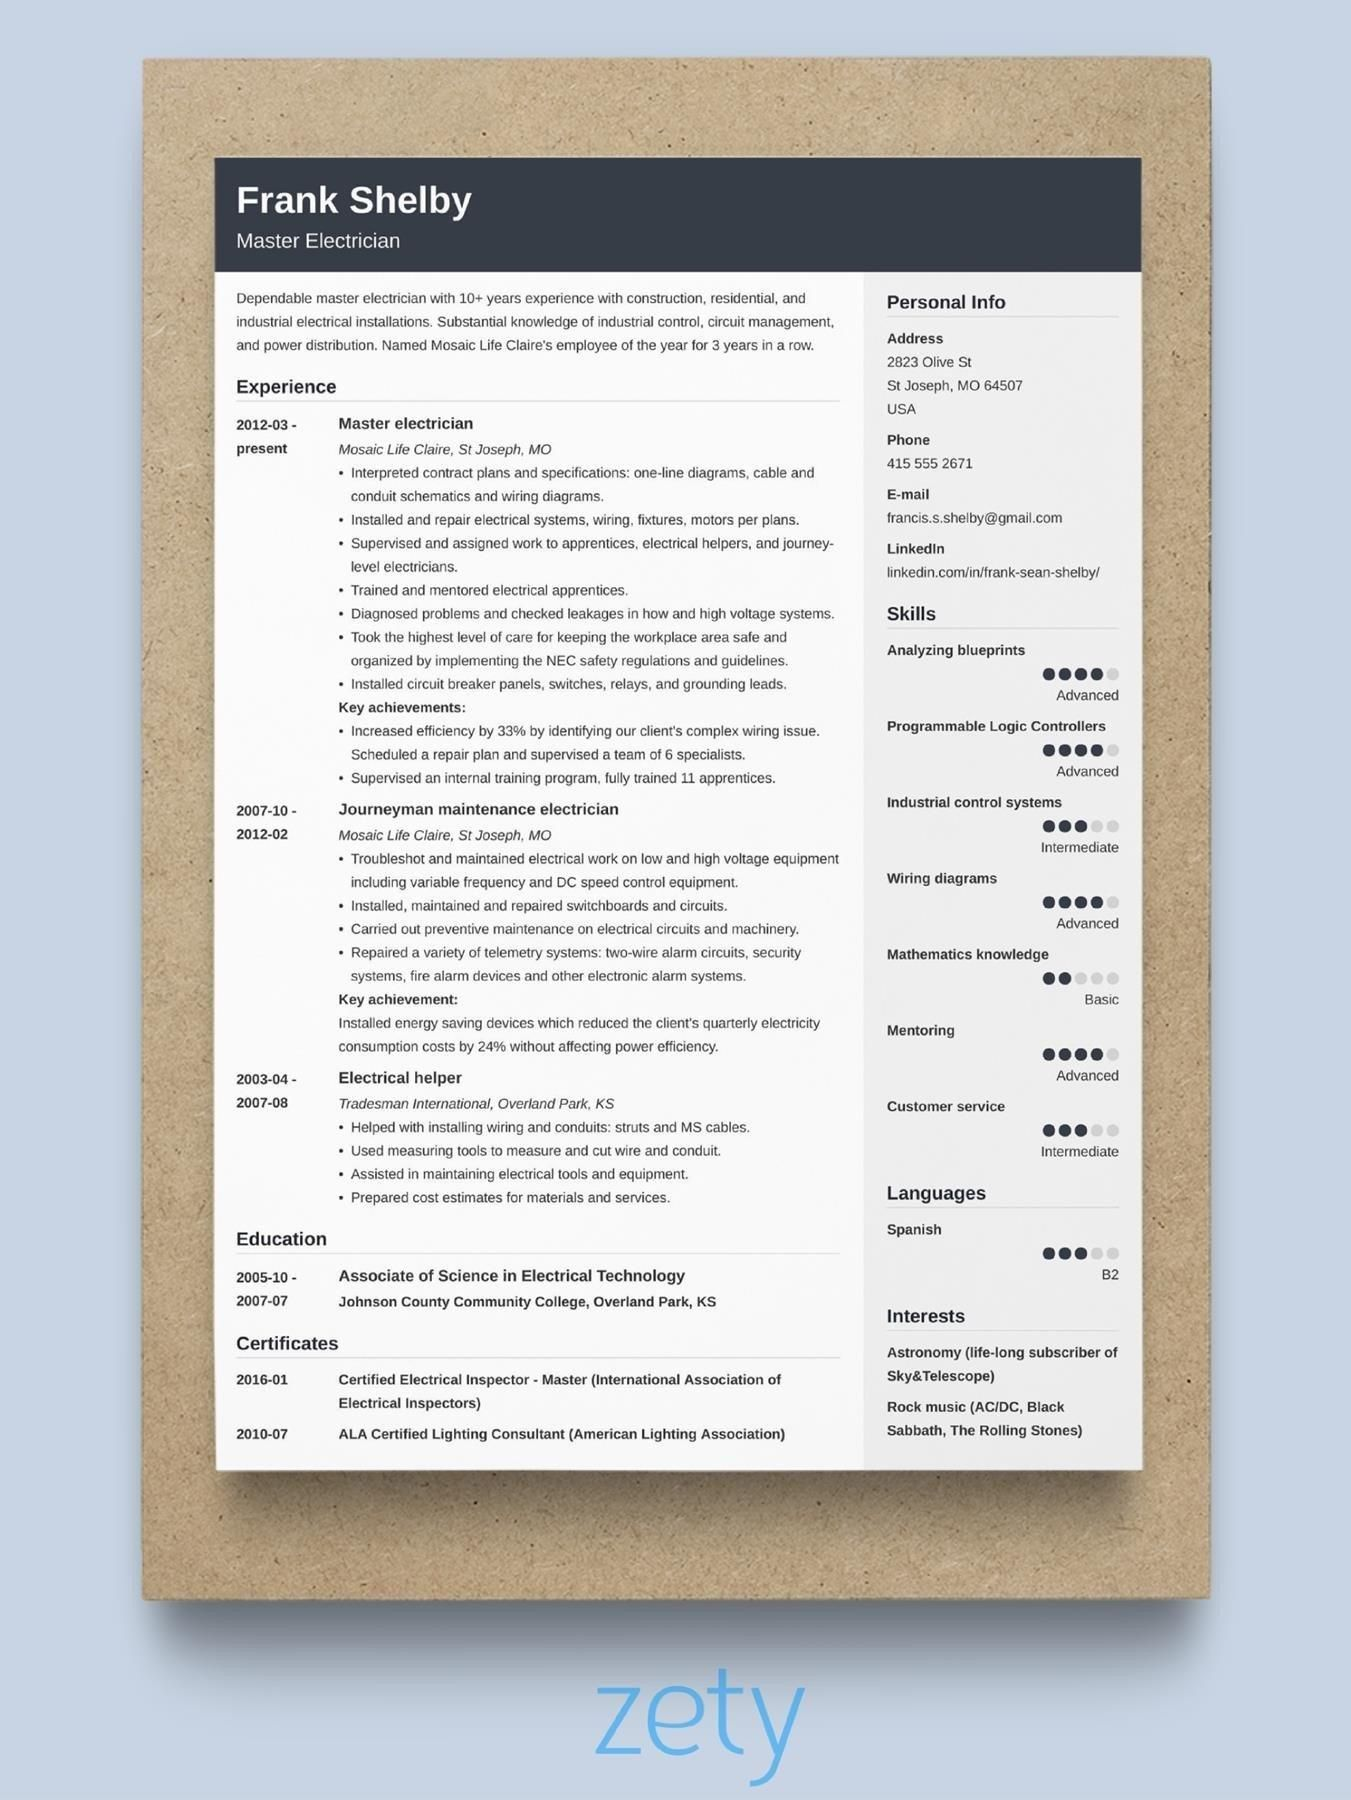 Executive Resume Templates 2020 in 2020 (With images